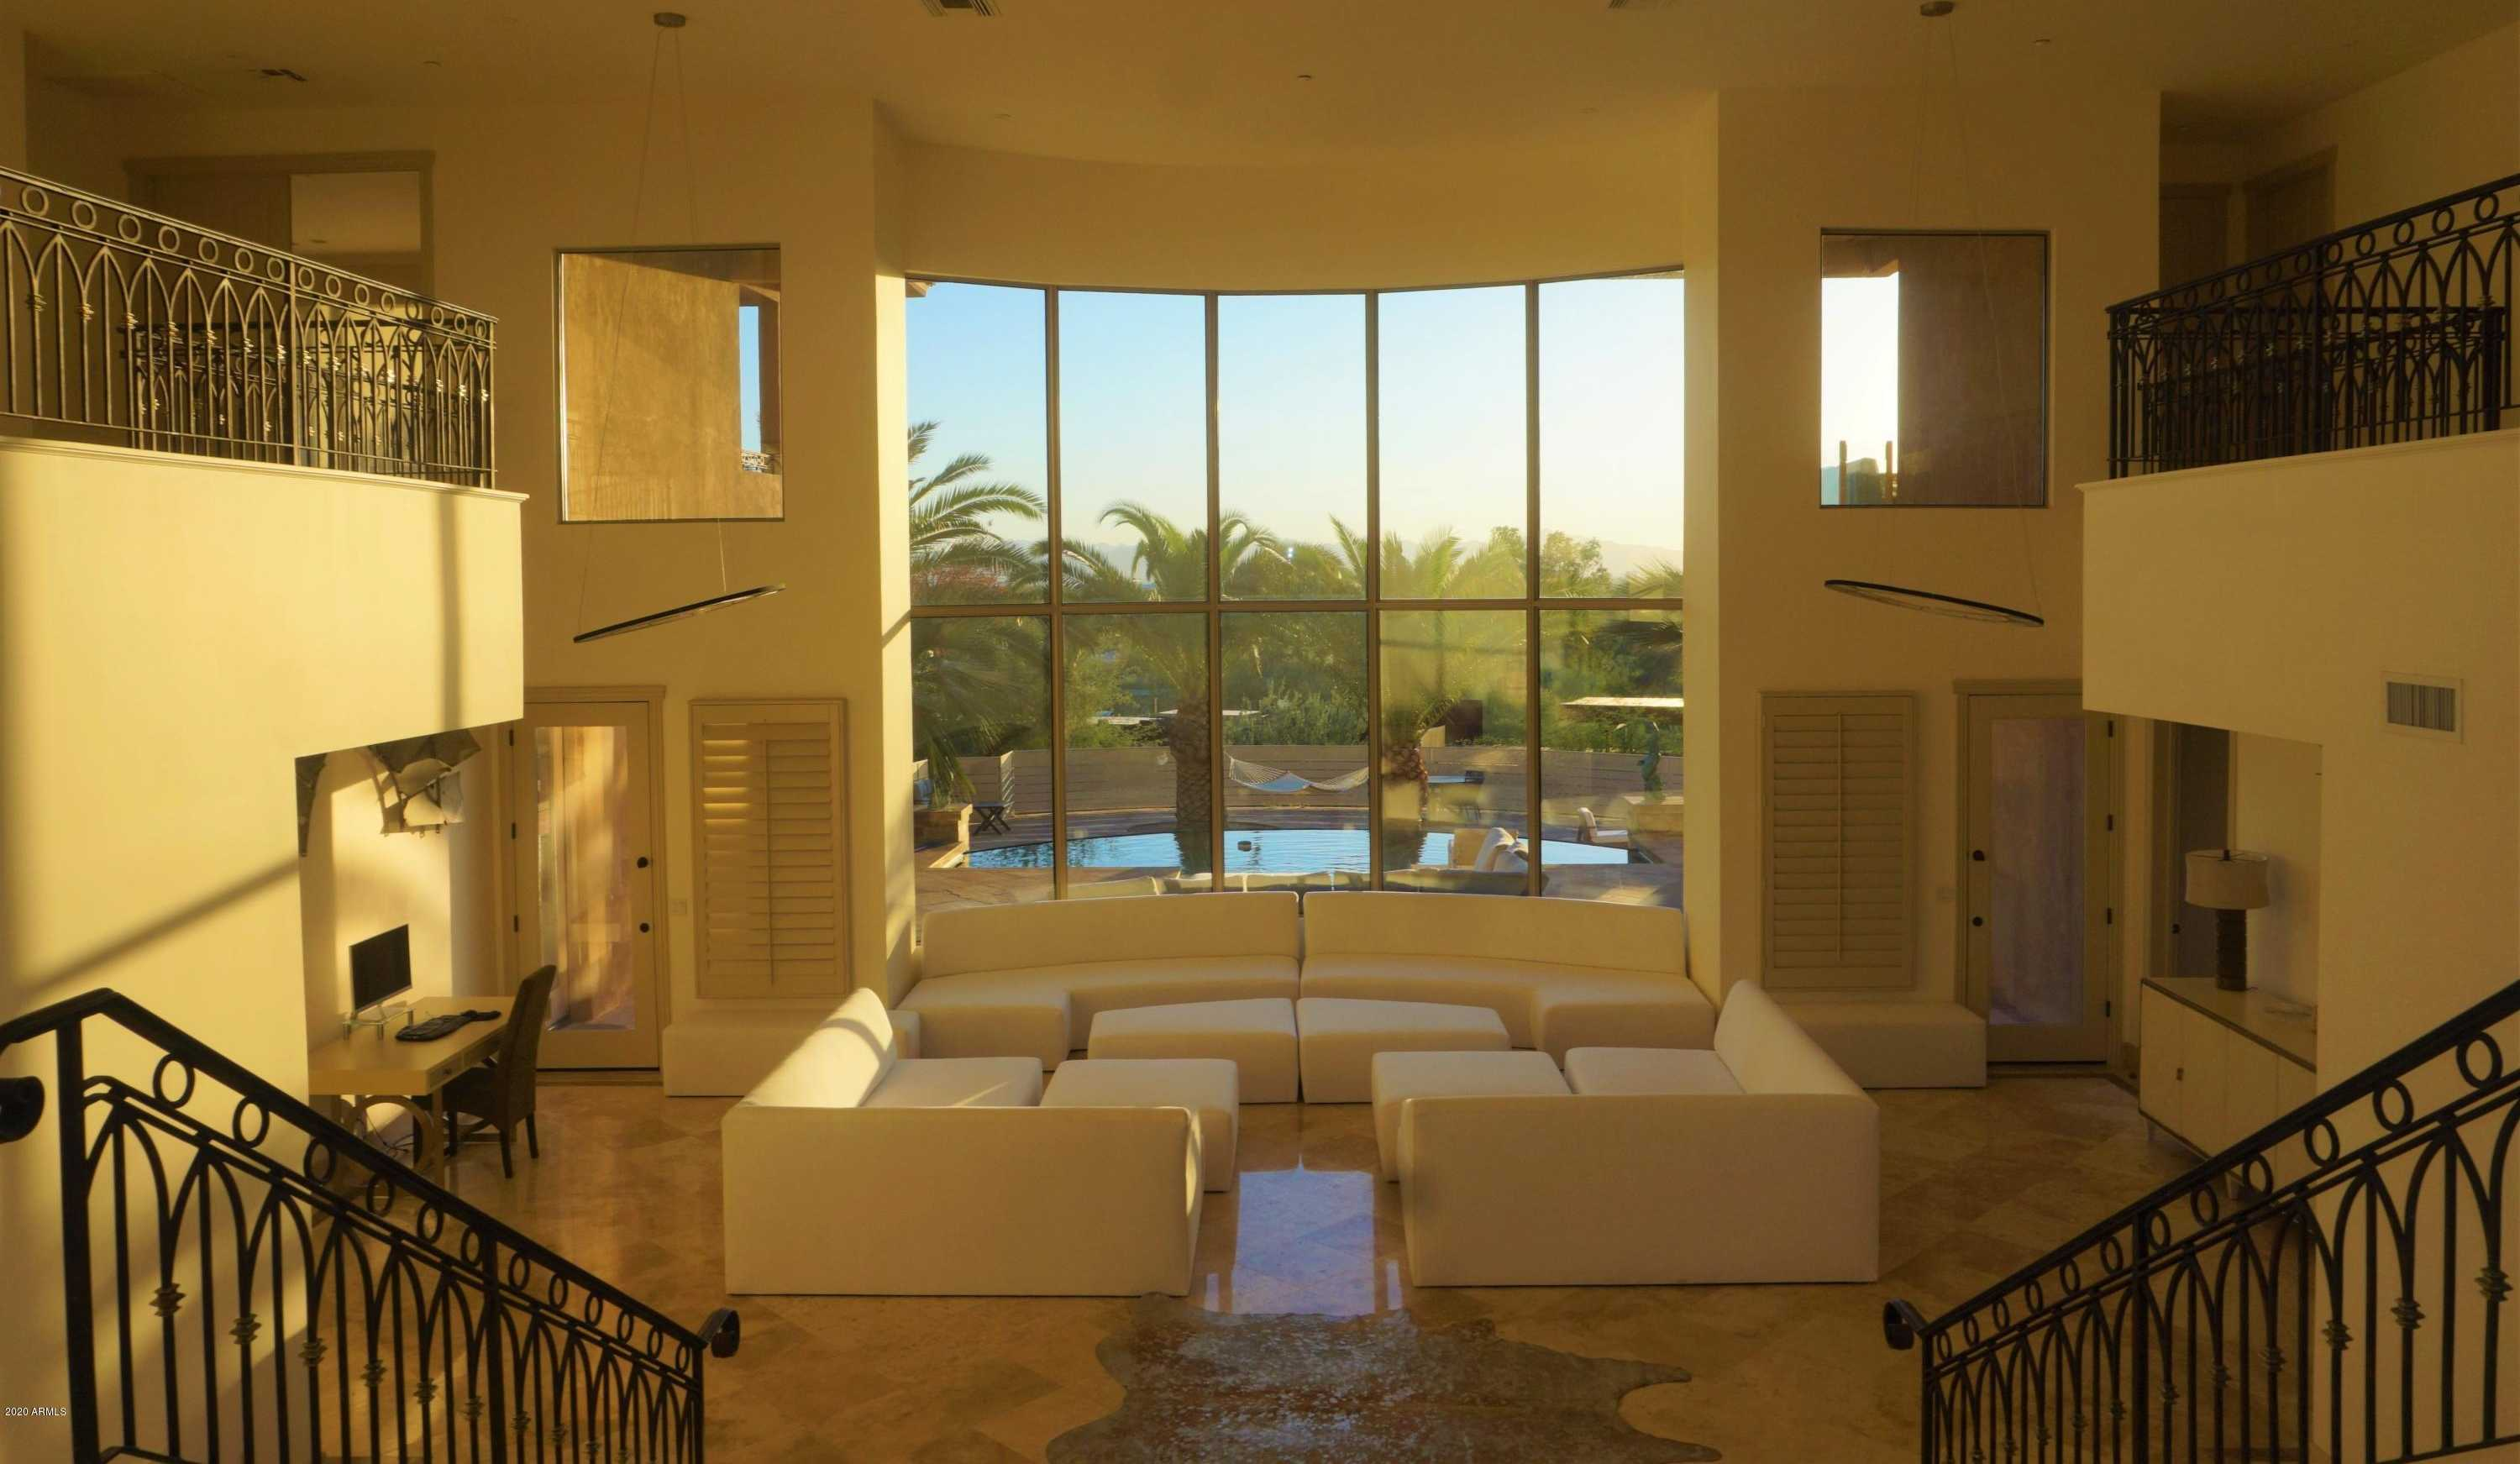 $3,950,000 - 5Br/5Ba - Home for Sale in Camelback Foothills 2, Paradise Valley